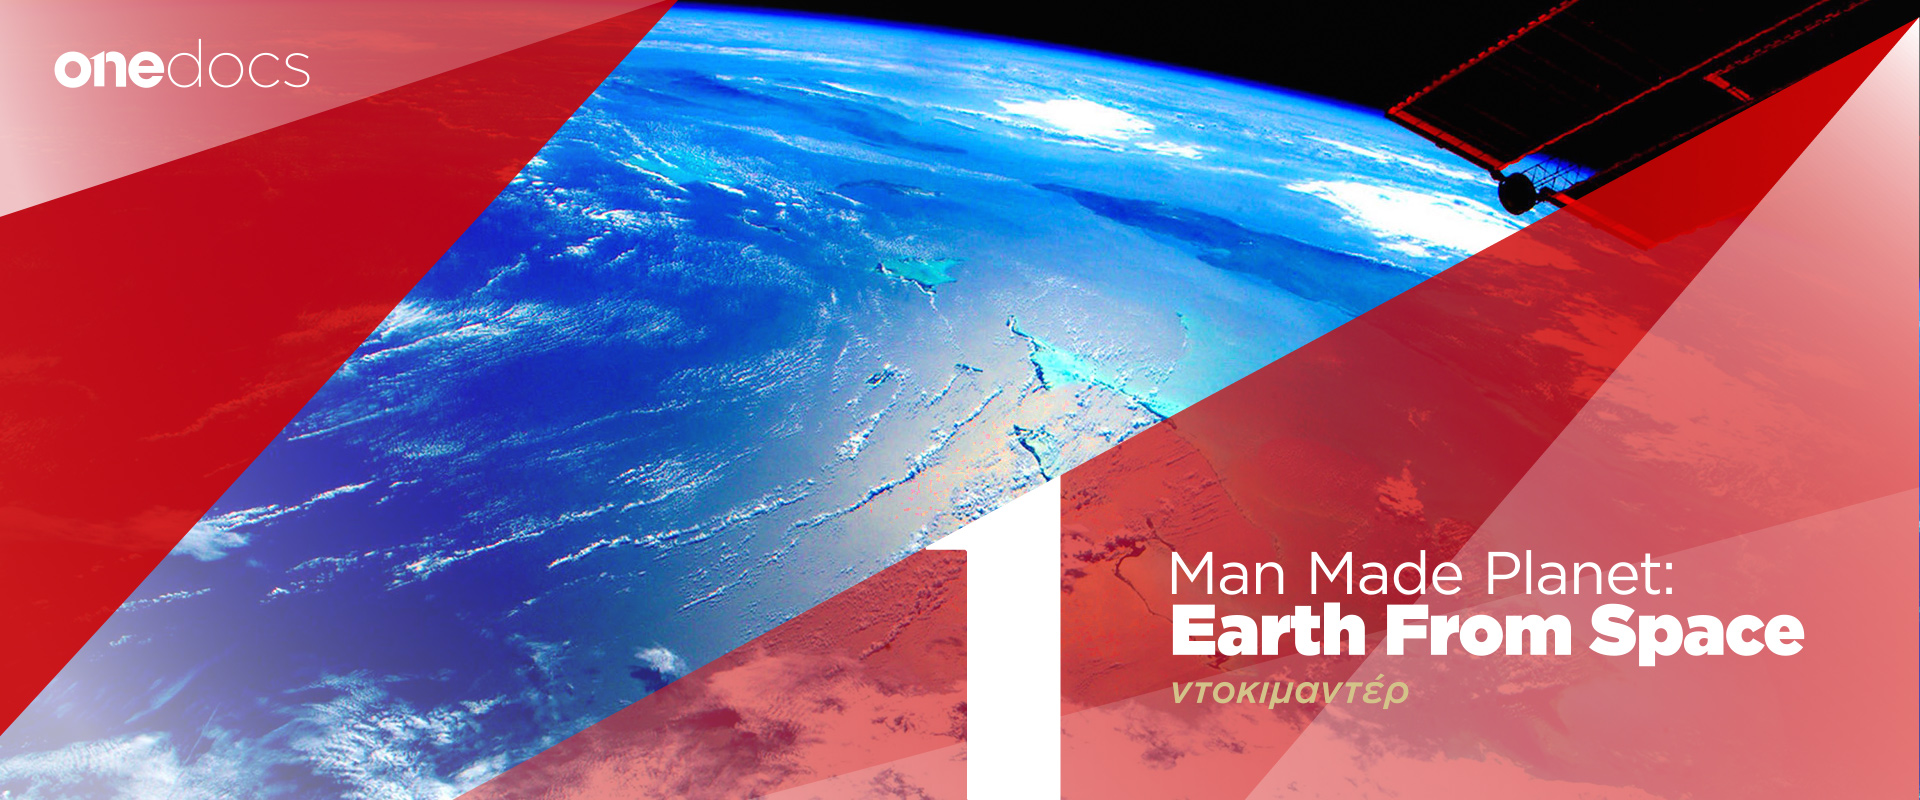 Man Made Planet: Earth From Space